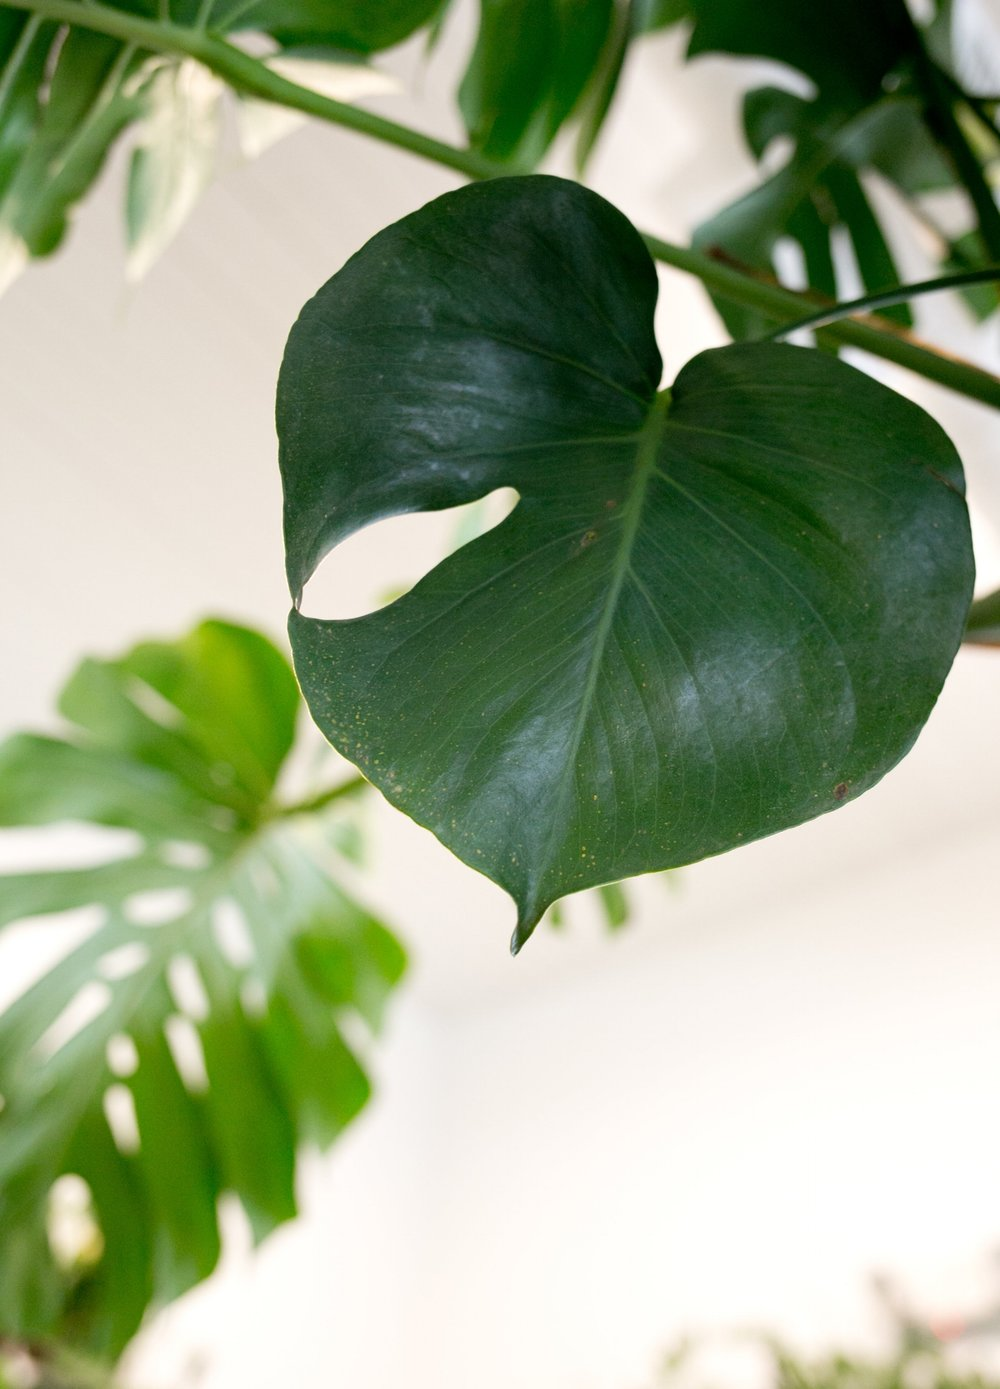 Monstera deliciosa is sometimes incorrectly called a split leaf philodendron .  Philodendron  are related to the  Monstera  genus because the are in the same taxonomic family, Araceae.